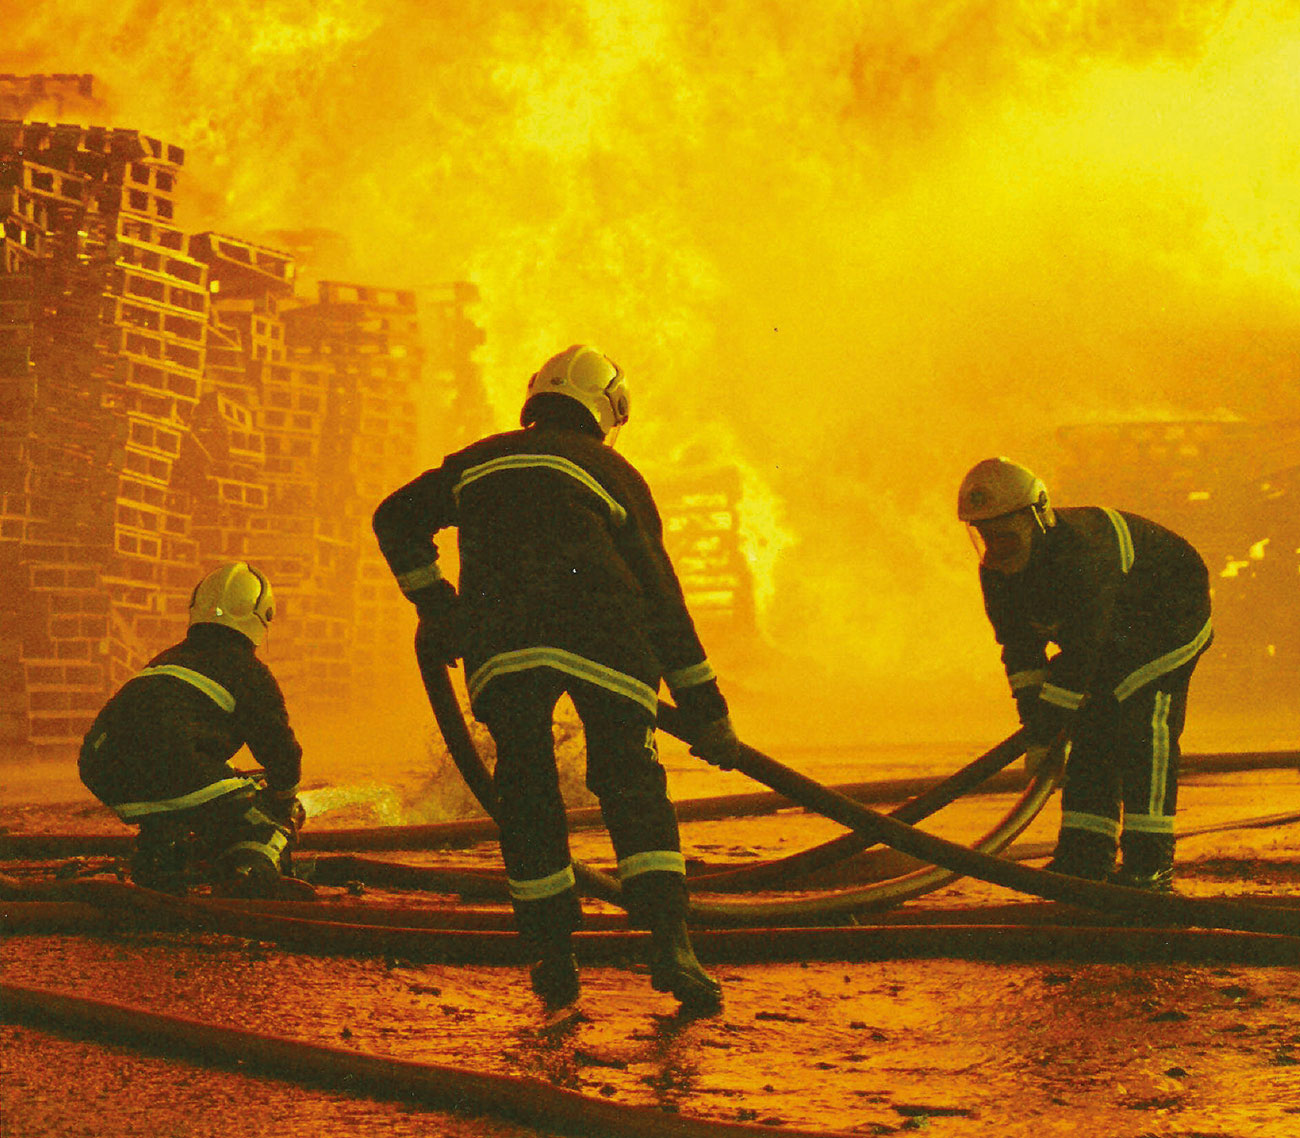 Firefighters from West Yorkshire Fire and Rescue Service tackling a large fire at a wood yard.